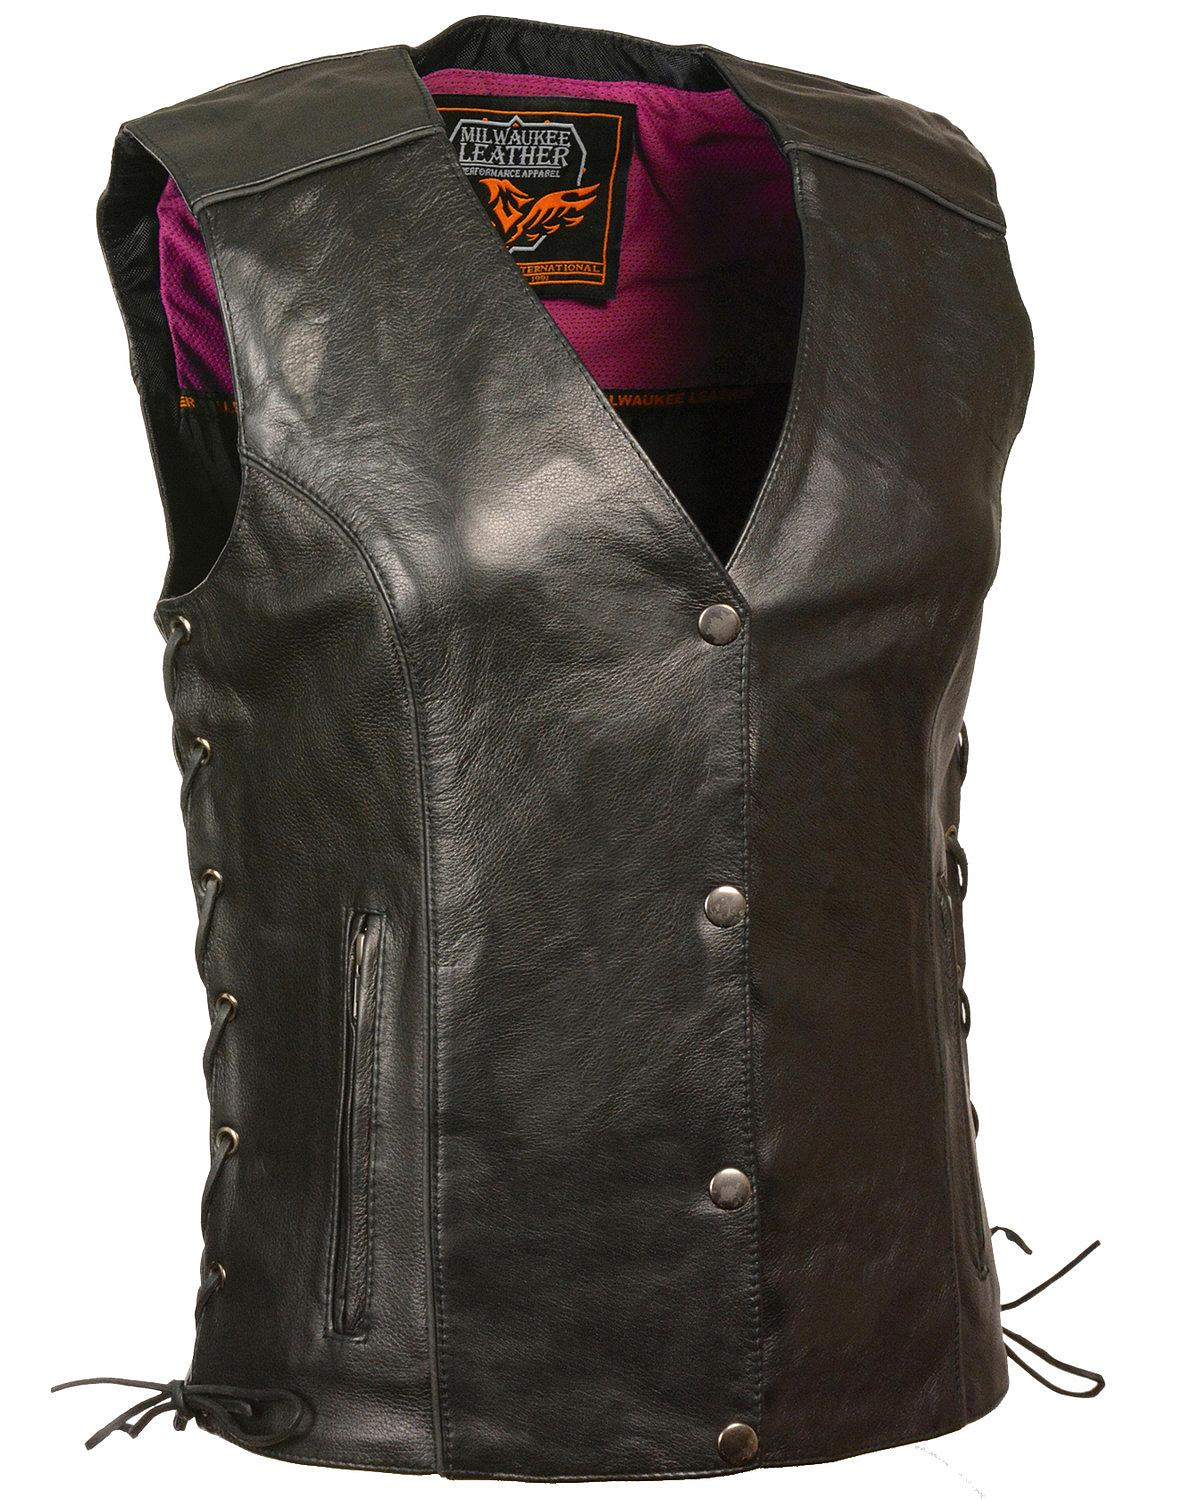 Milwaukee Leather Women's Stud and Wings Leather Vest - 4X - MLL4505 - 4XL - BLK